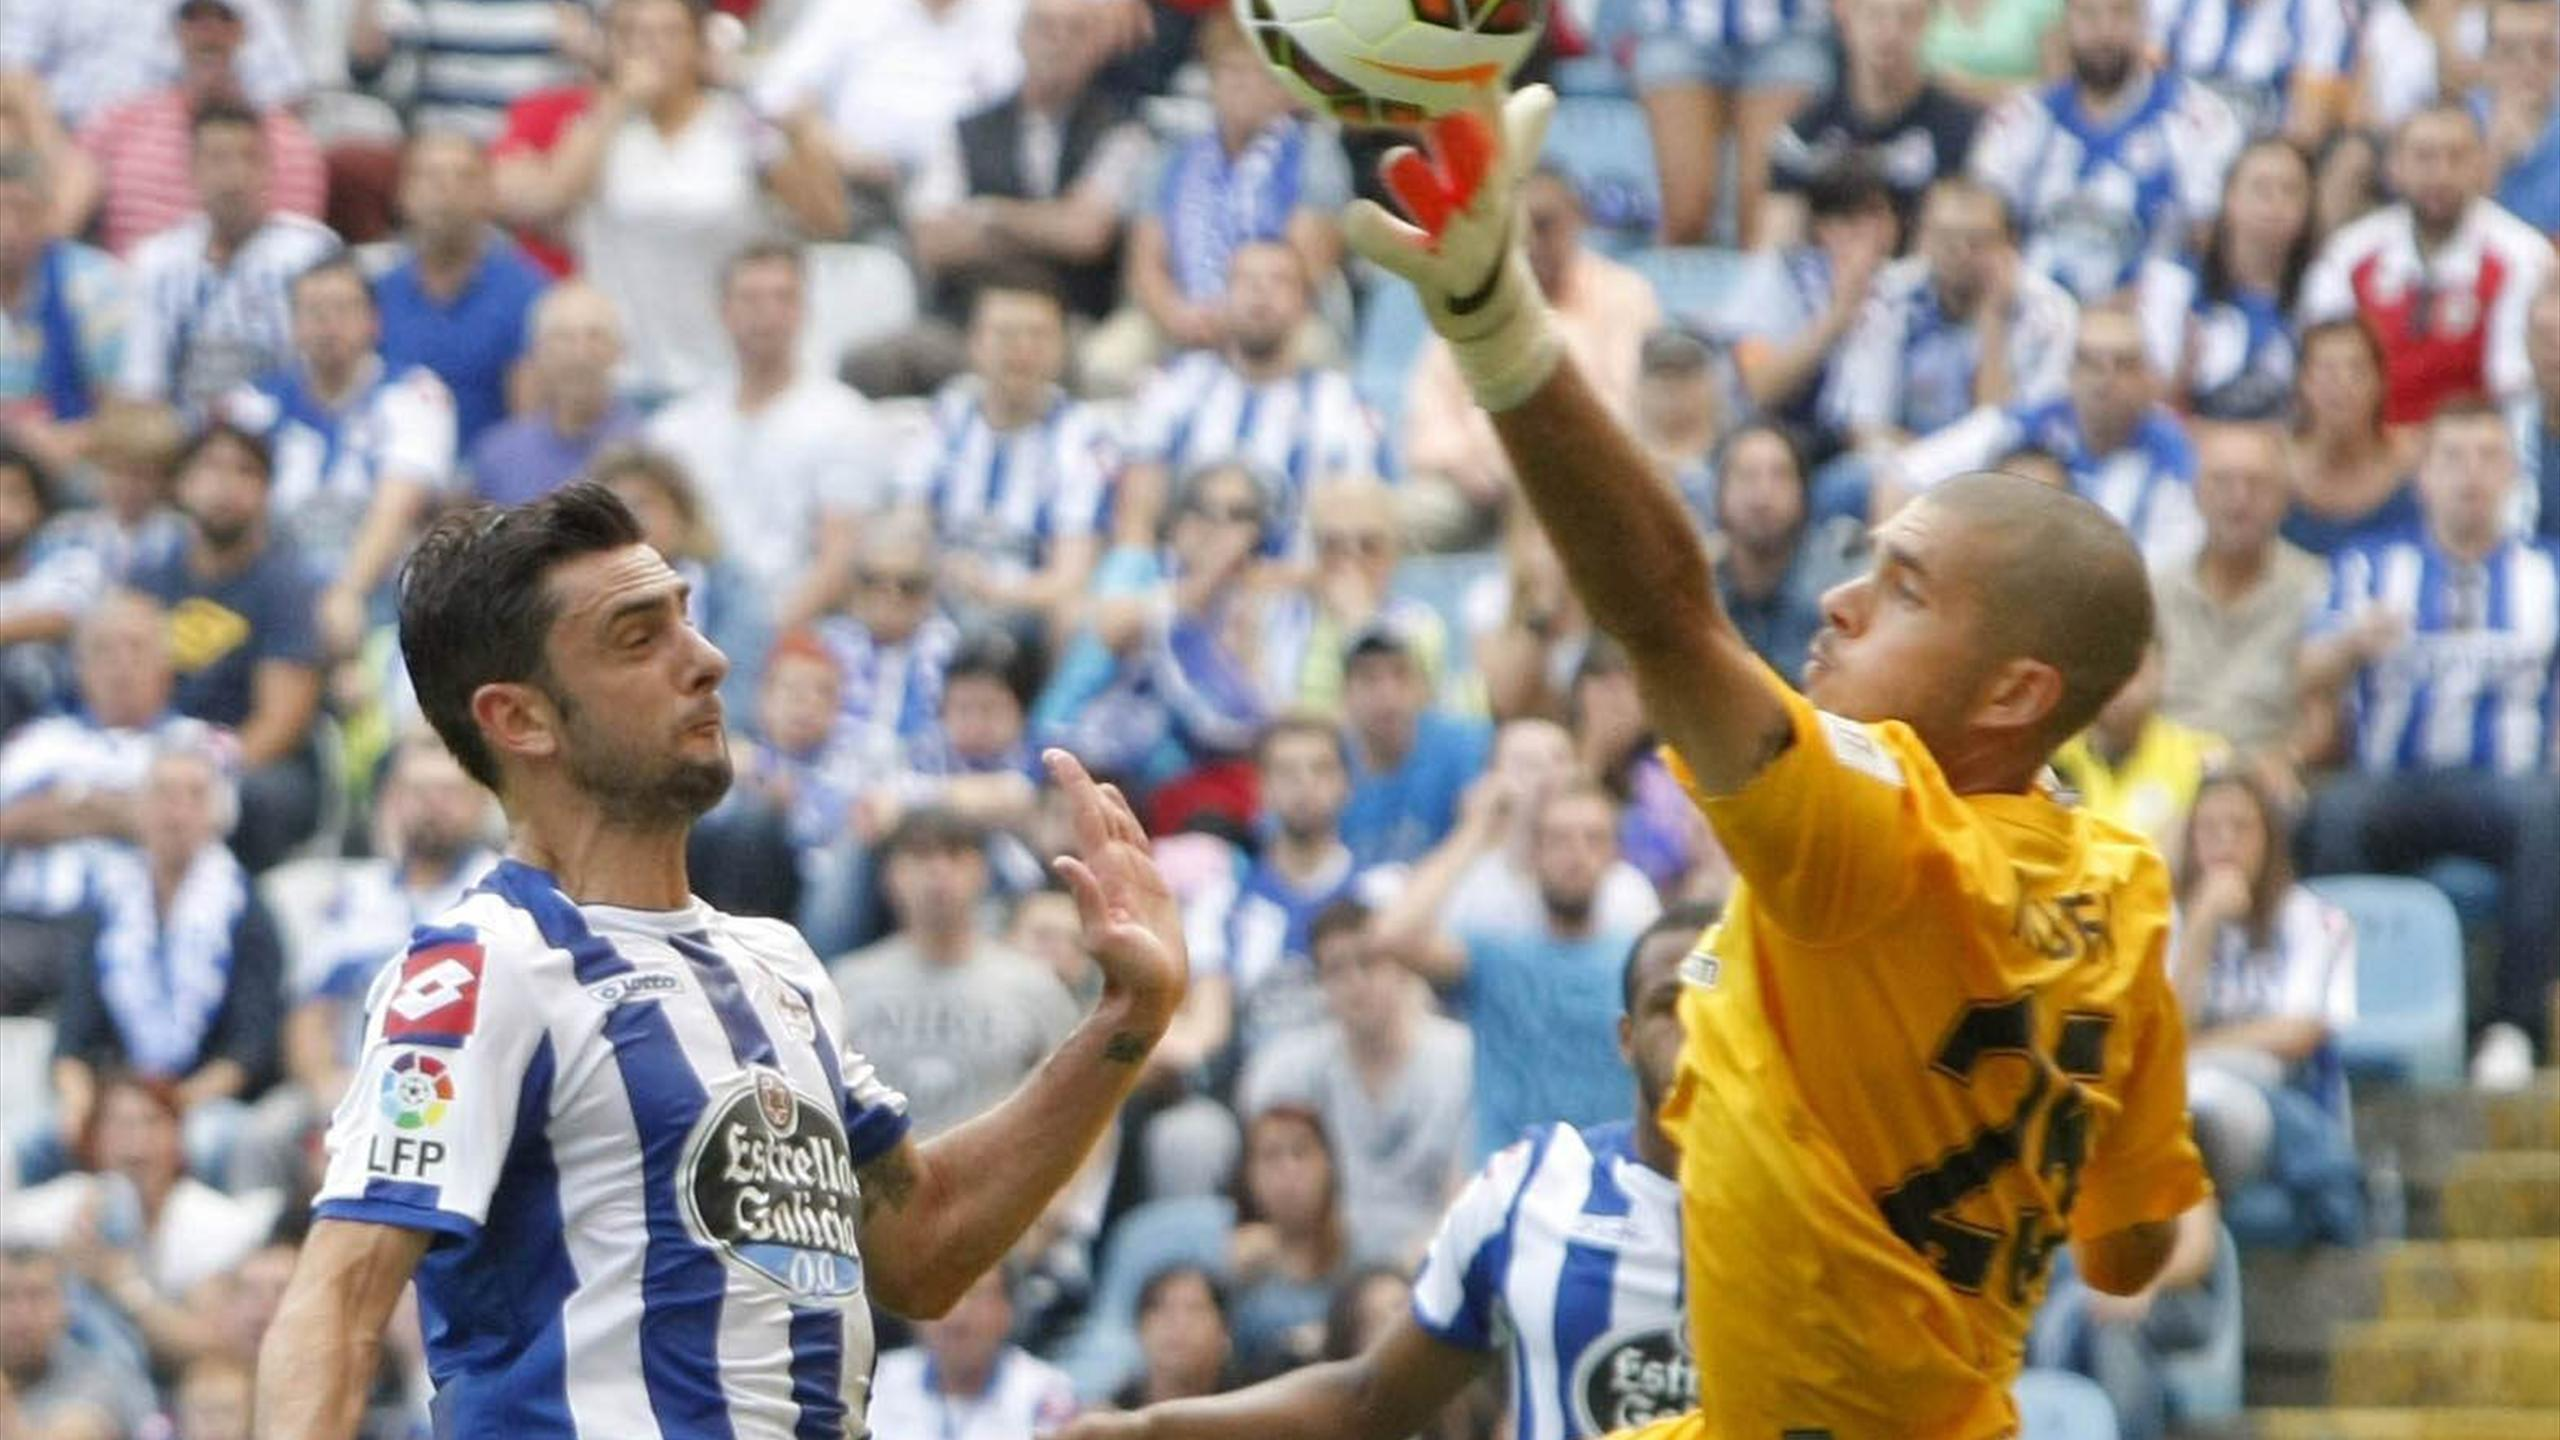 Video: Deportivo La Coruna vs Almeria